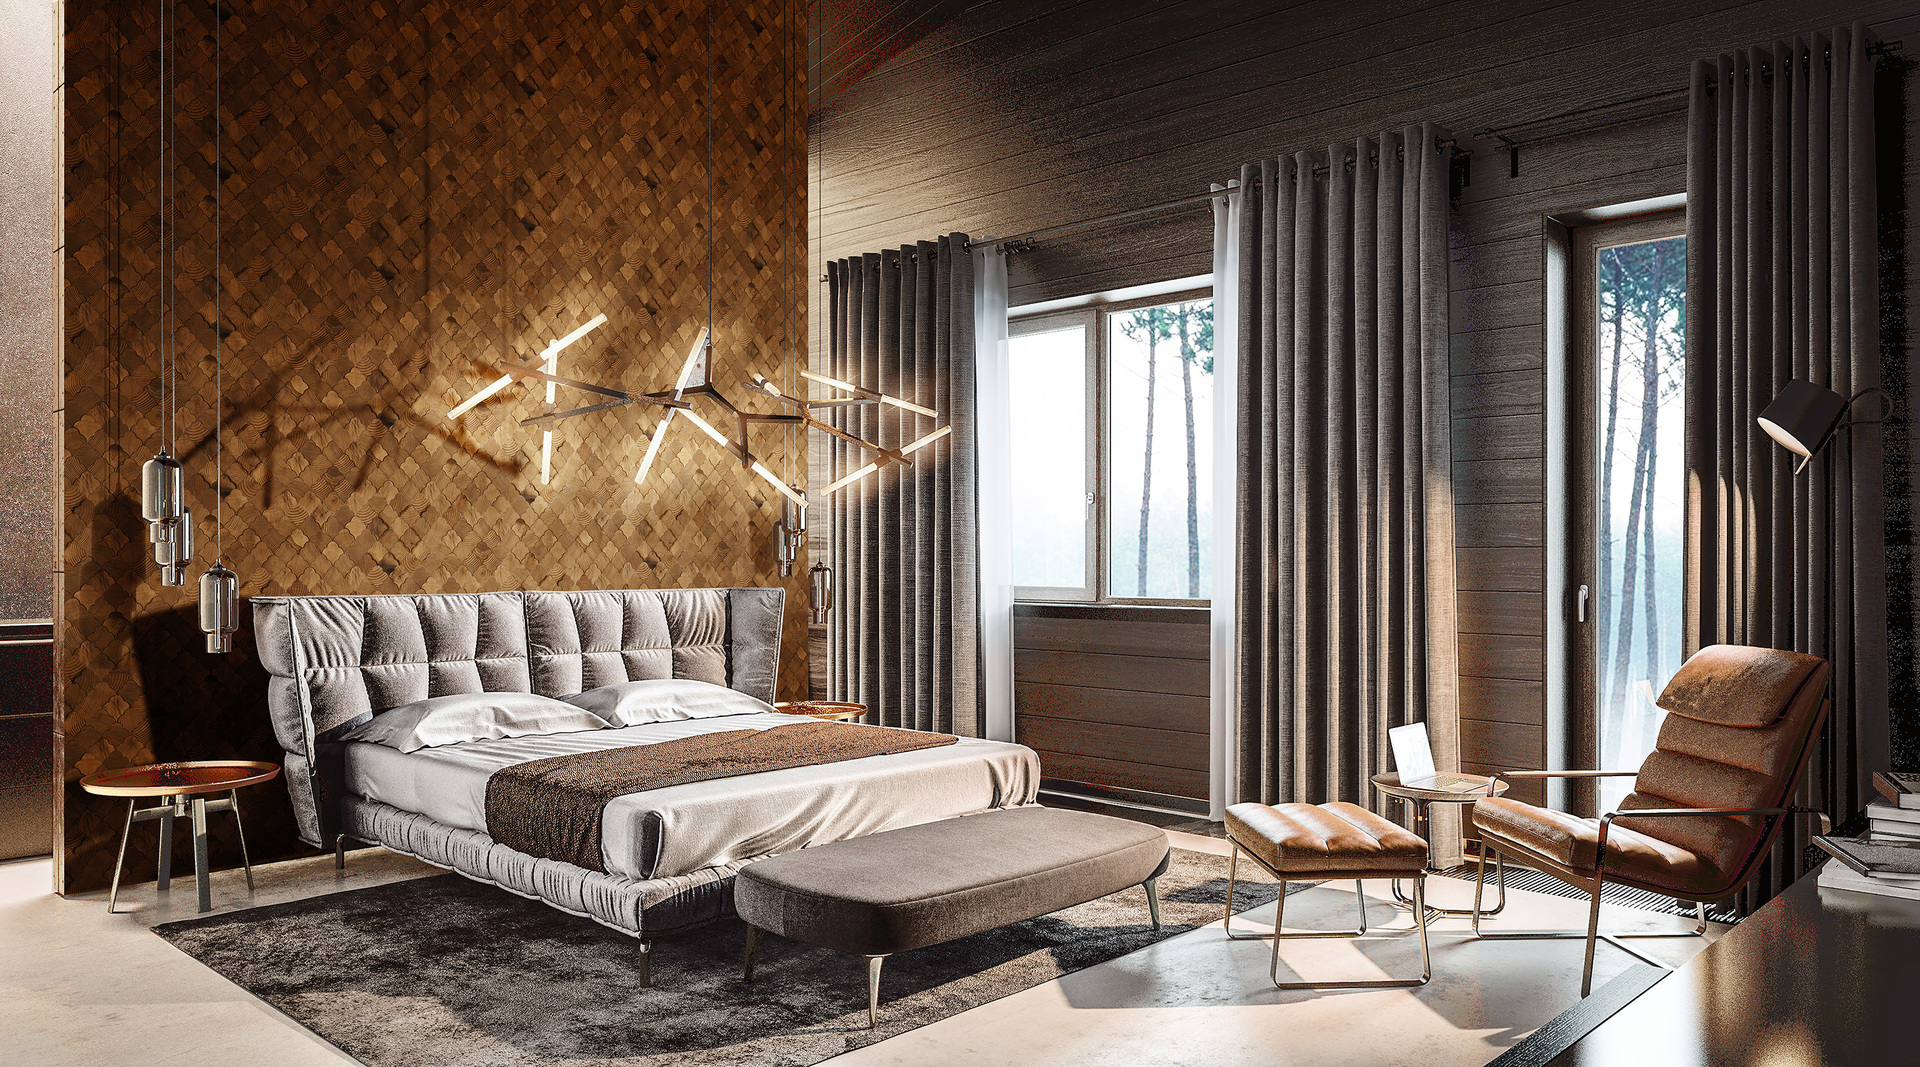 Stereo Scallop natural wood tile has an artistic design that brings natural beauty into this bedroom.